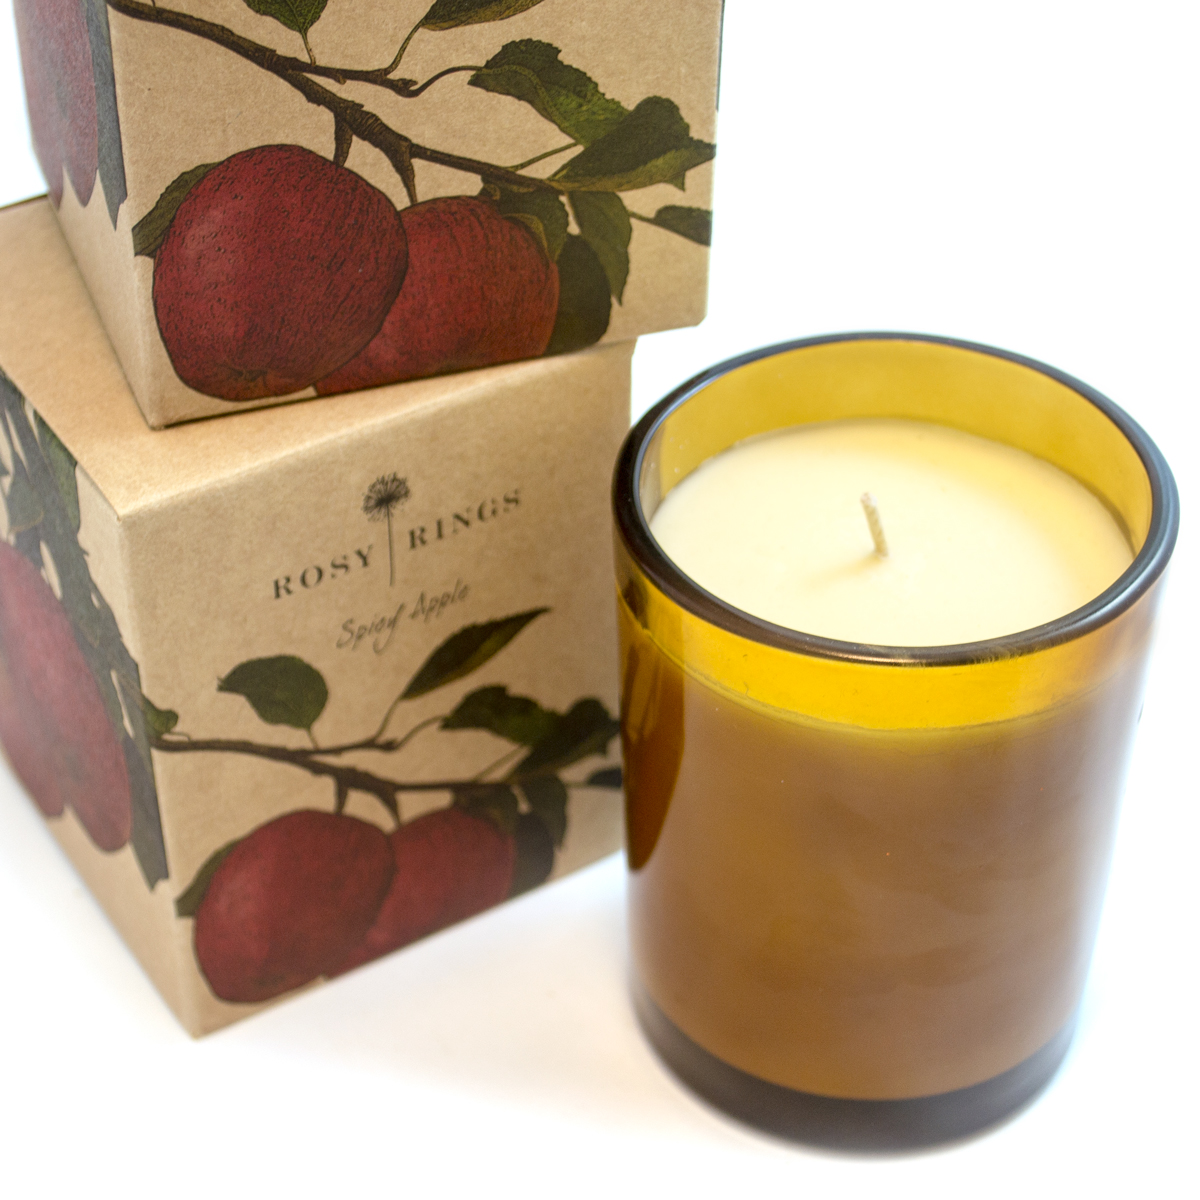 Rosy_Rings_Candle_2.jpg